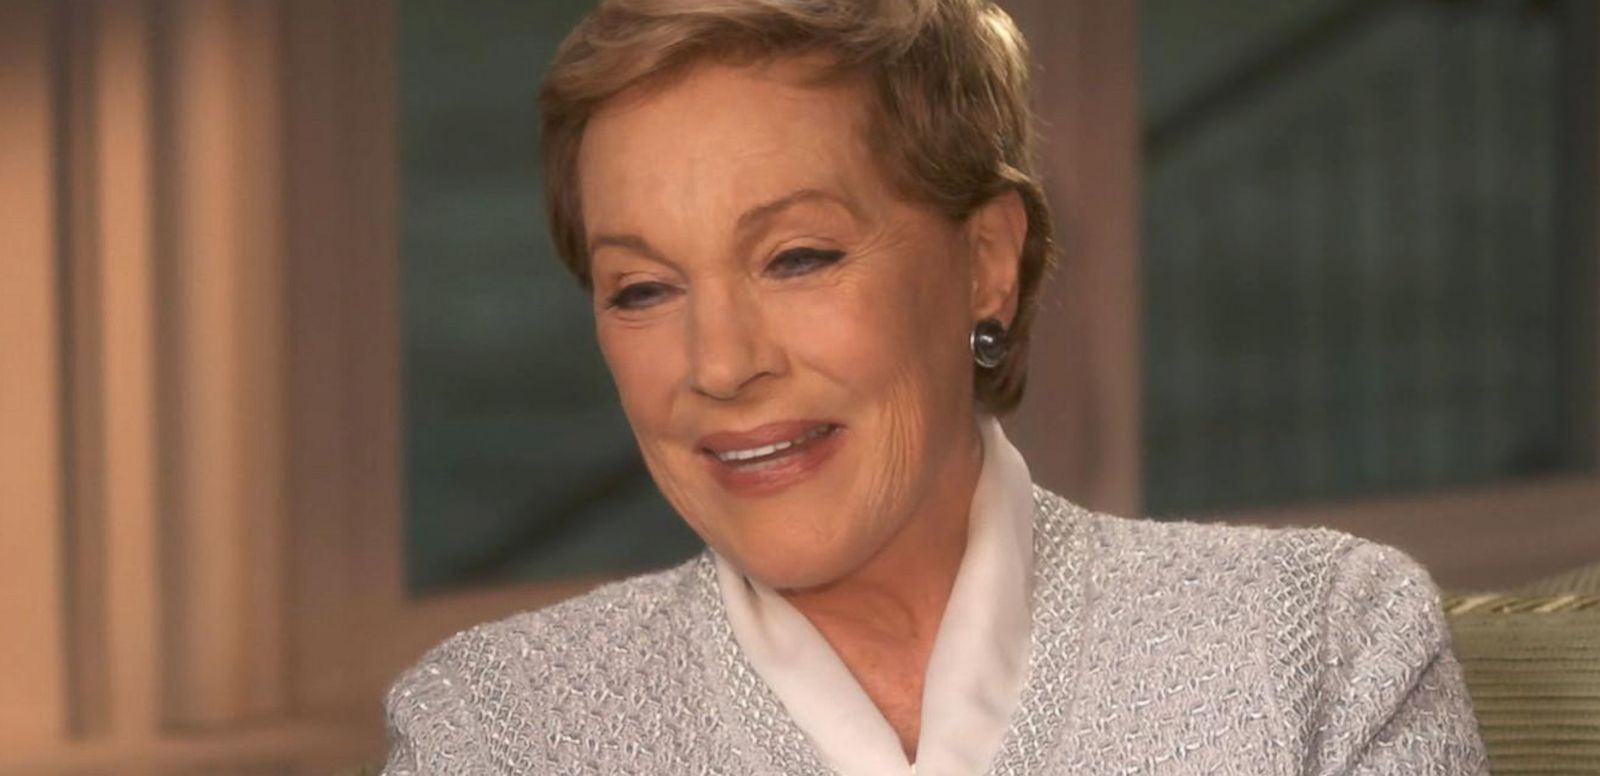 Go Inside 'The Sound of Music' With Julie Andrews